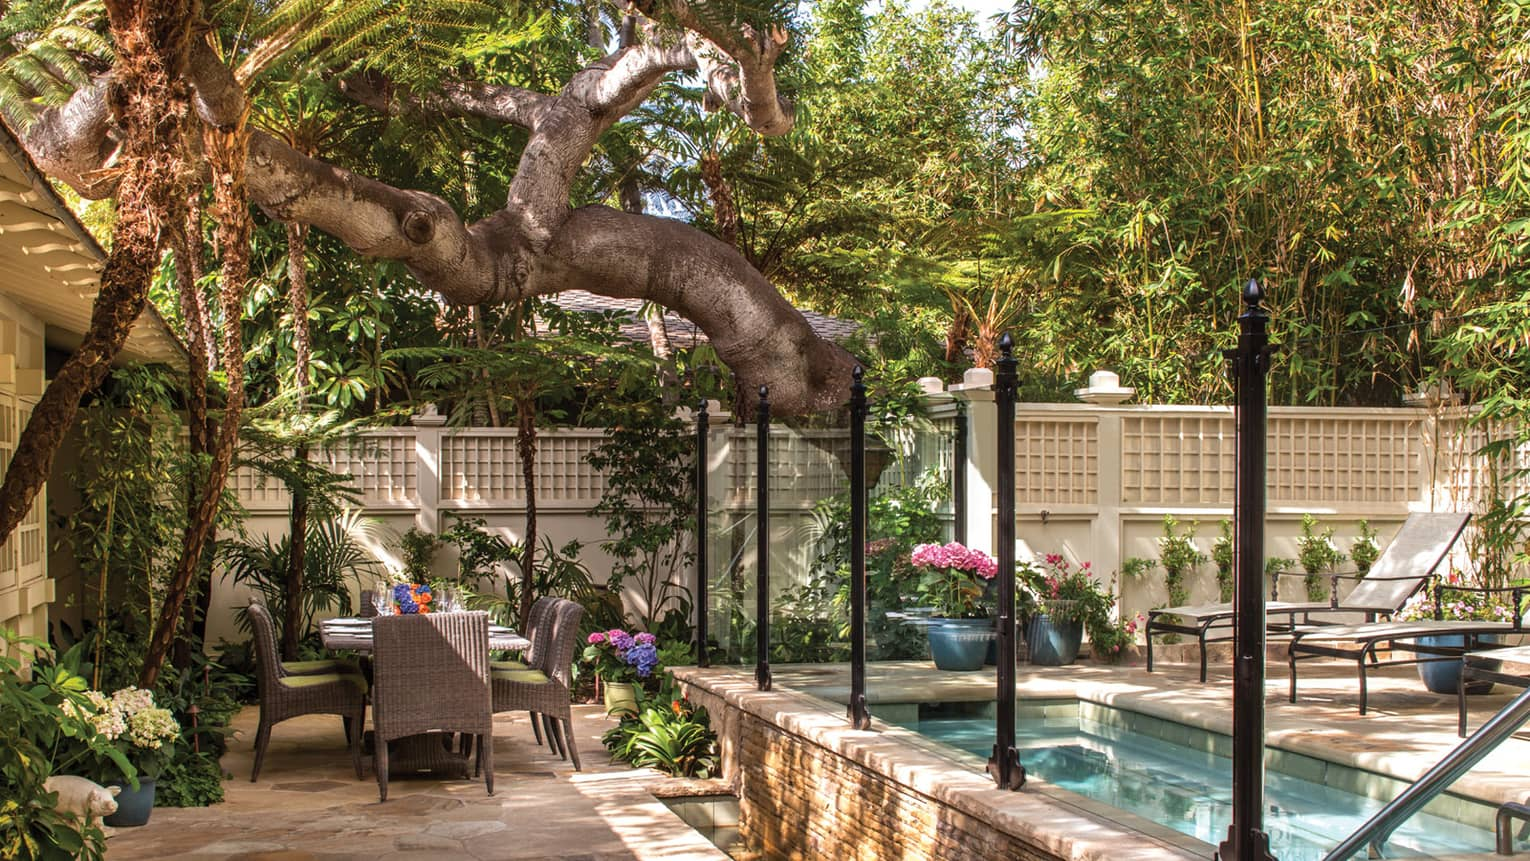 Large tree, branch hanging over Ty Warner bungalow patio dining table, plunge pool, flowers